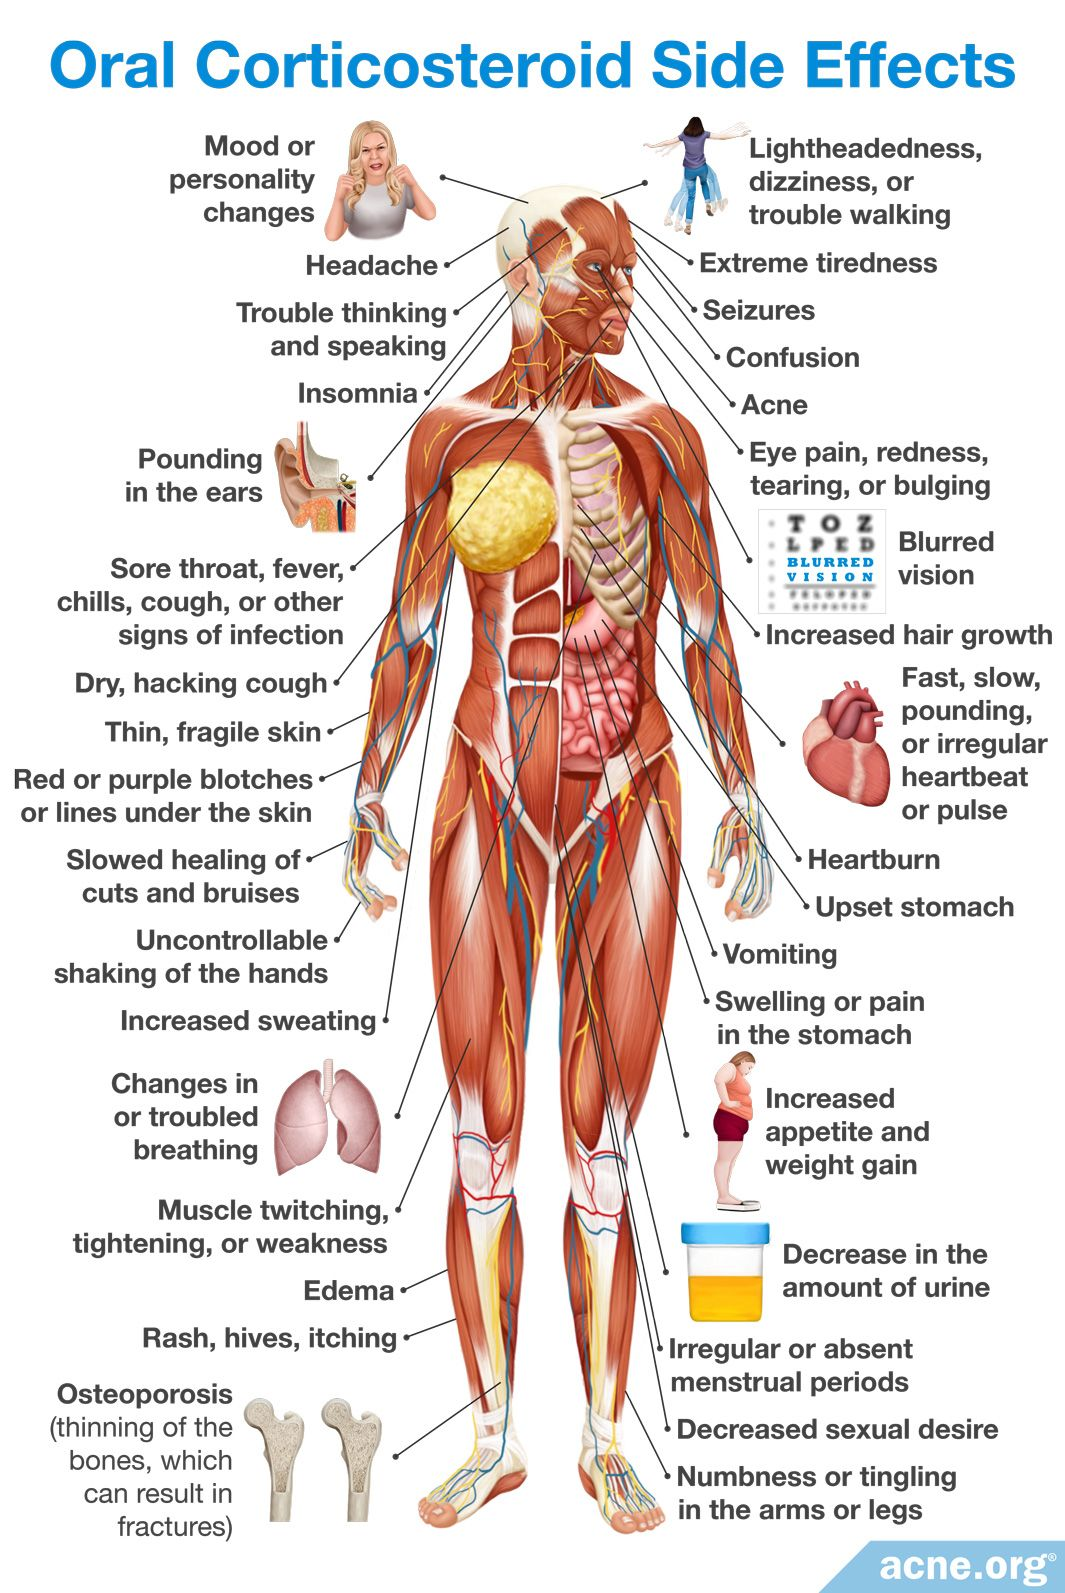 Oral Corticosteroid Side Effects